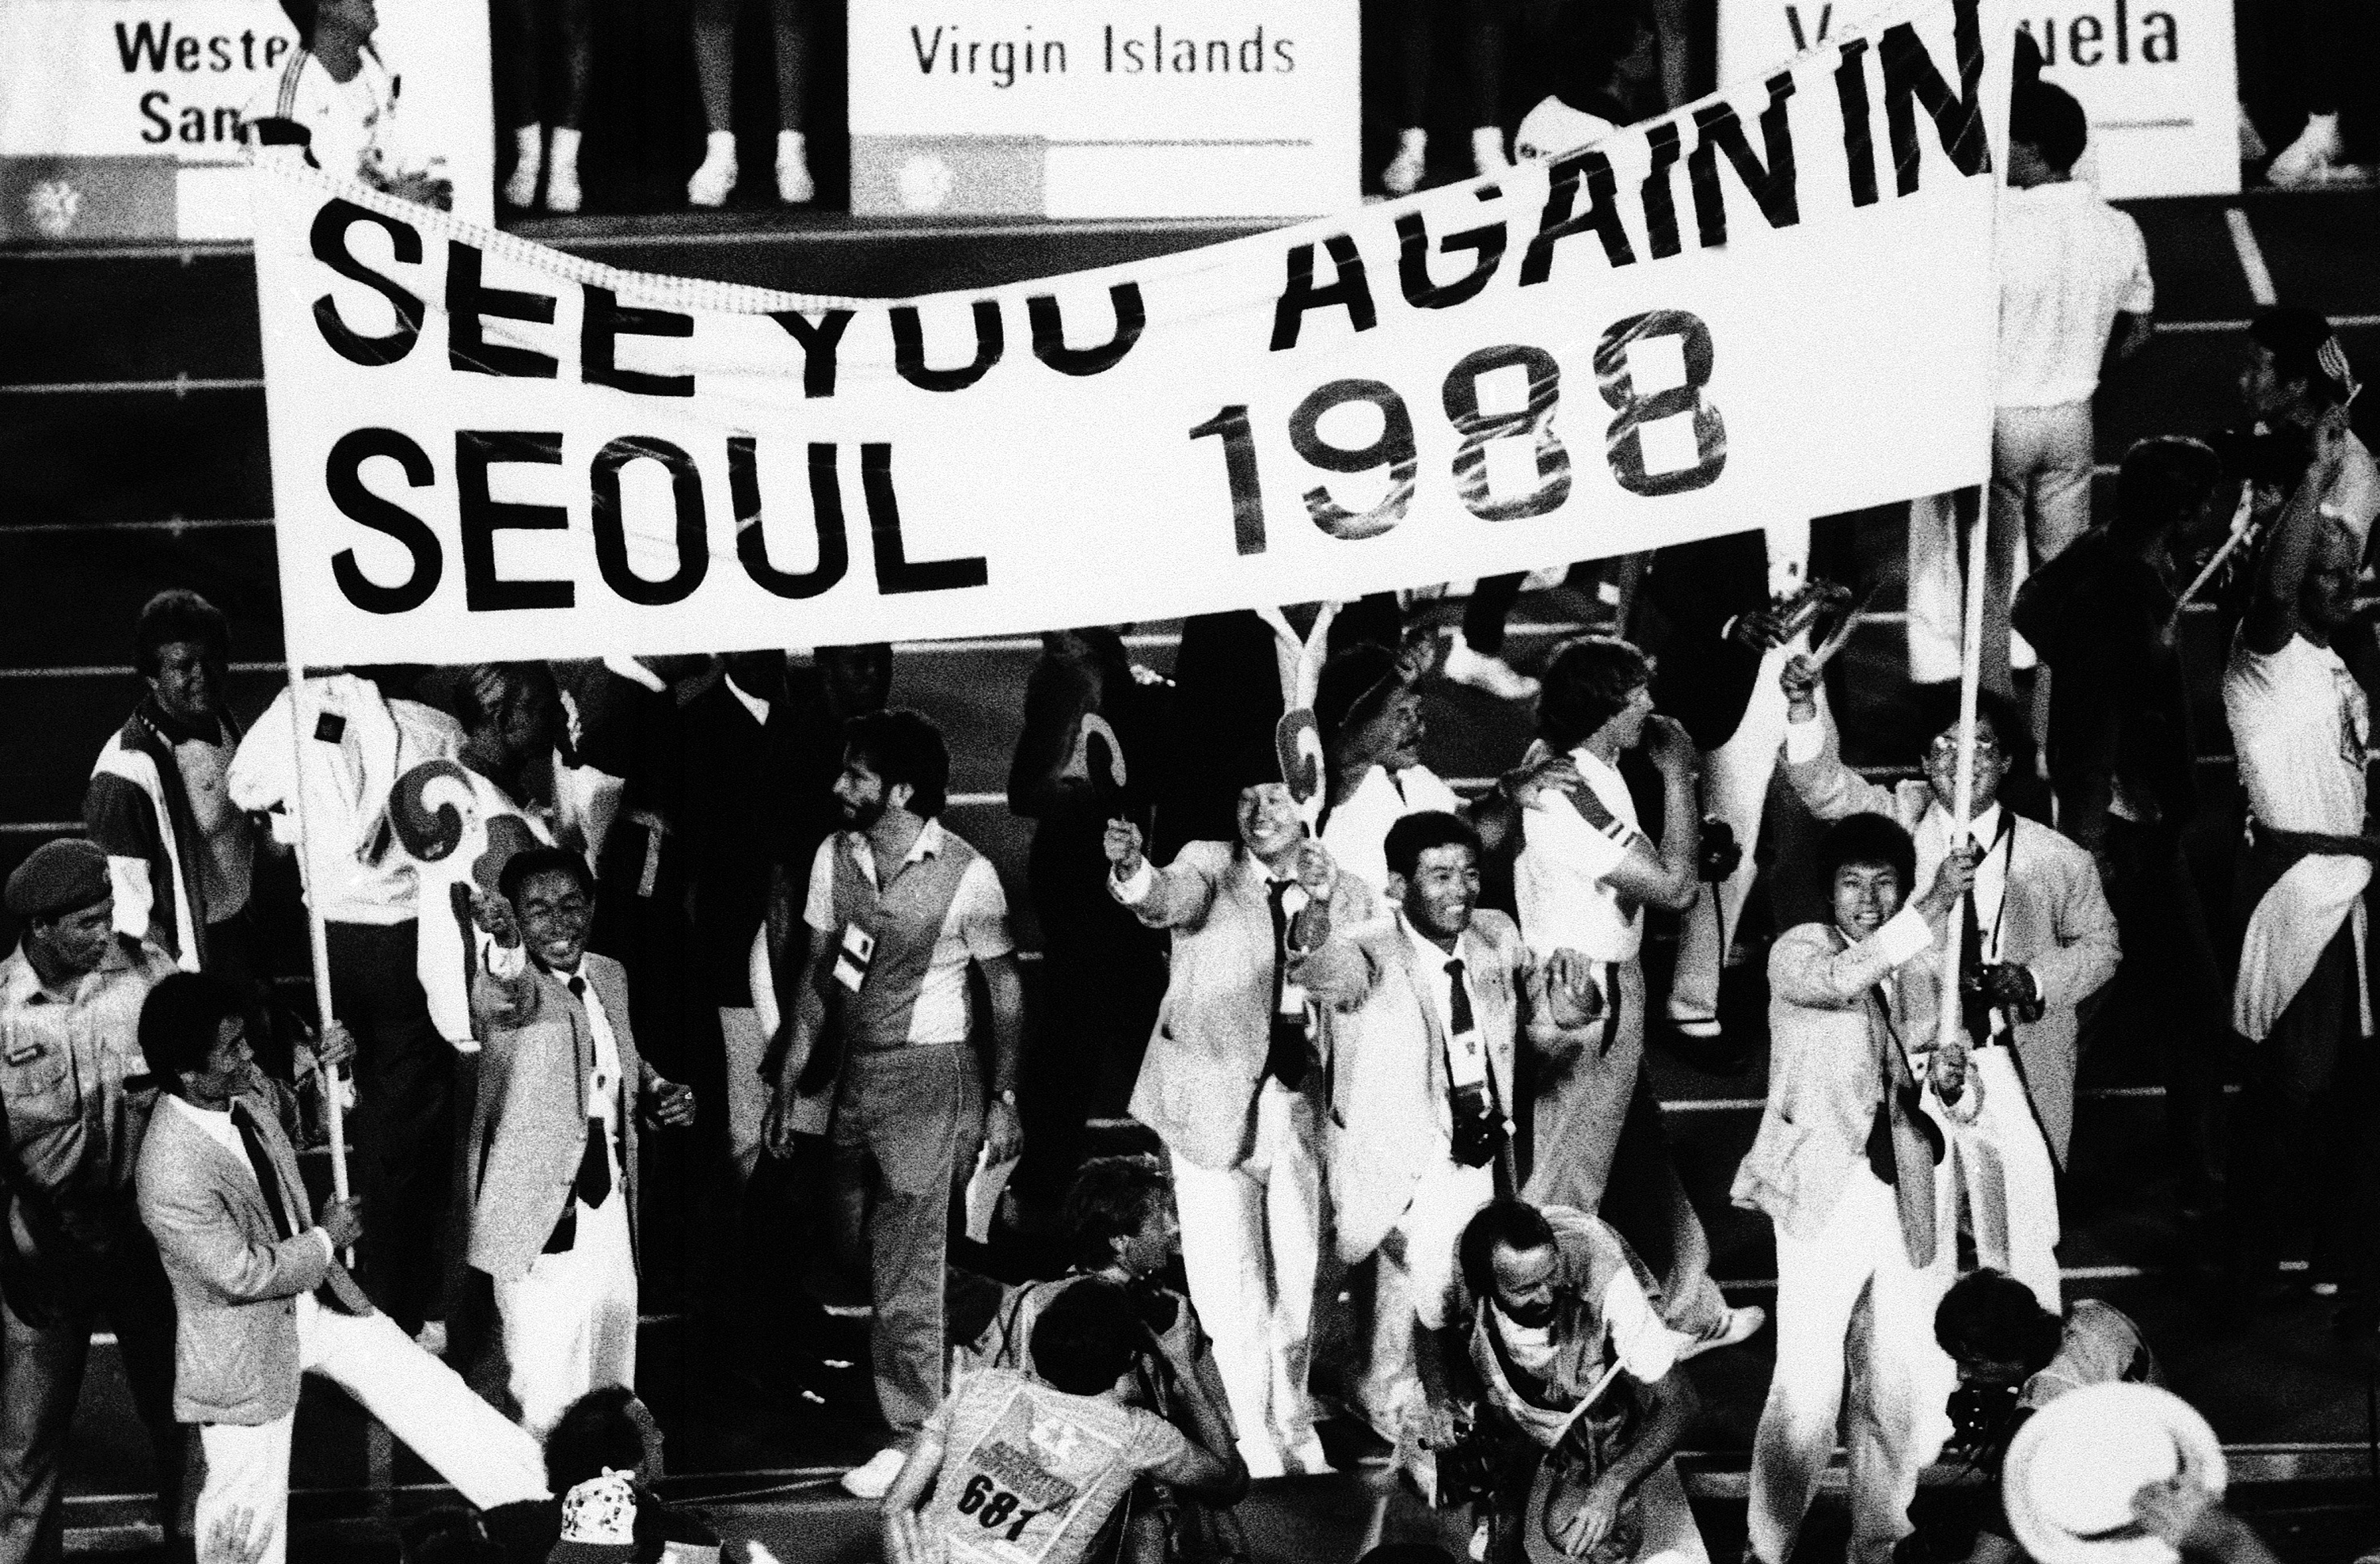 <div class='meta'><div class='origin-logo' data-origin='AP'></div><span class='caption-text' data-credit='AP Photo/Lionel Cironneau'>South Korean athletes hold a banner during the closing ceremonies of the XXIII Olympiad at the Coliseum in Los Angeles, Aug. 12, 1984.</span></div>